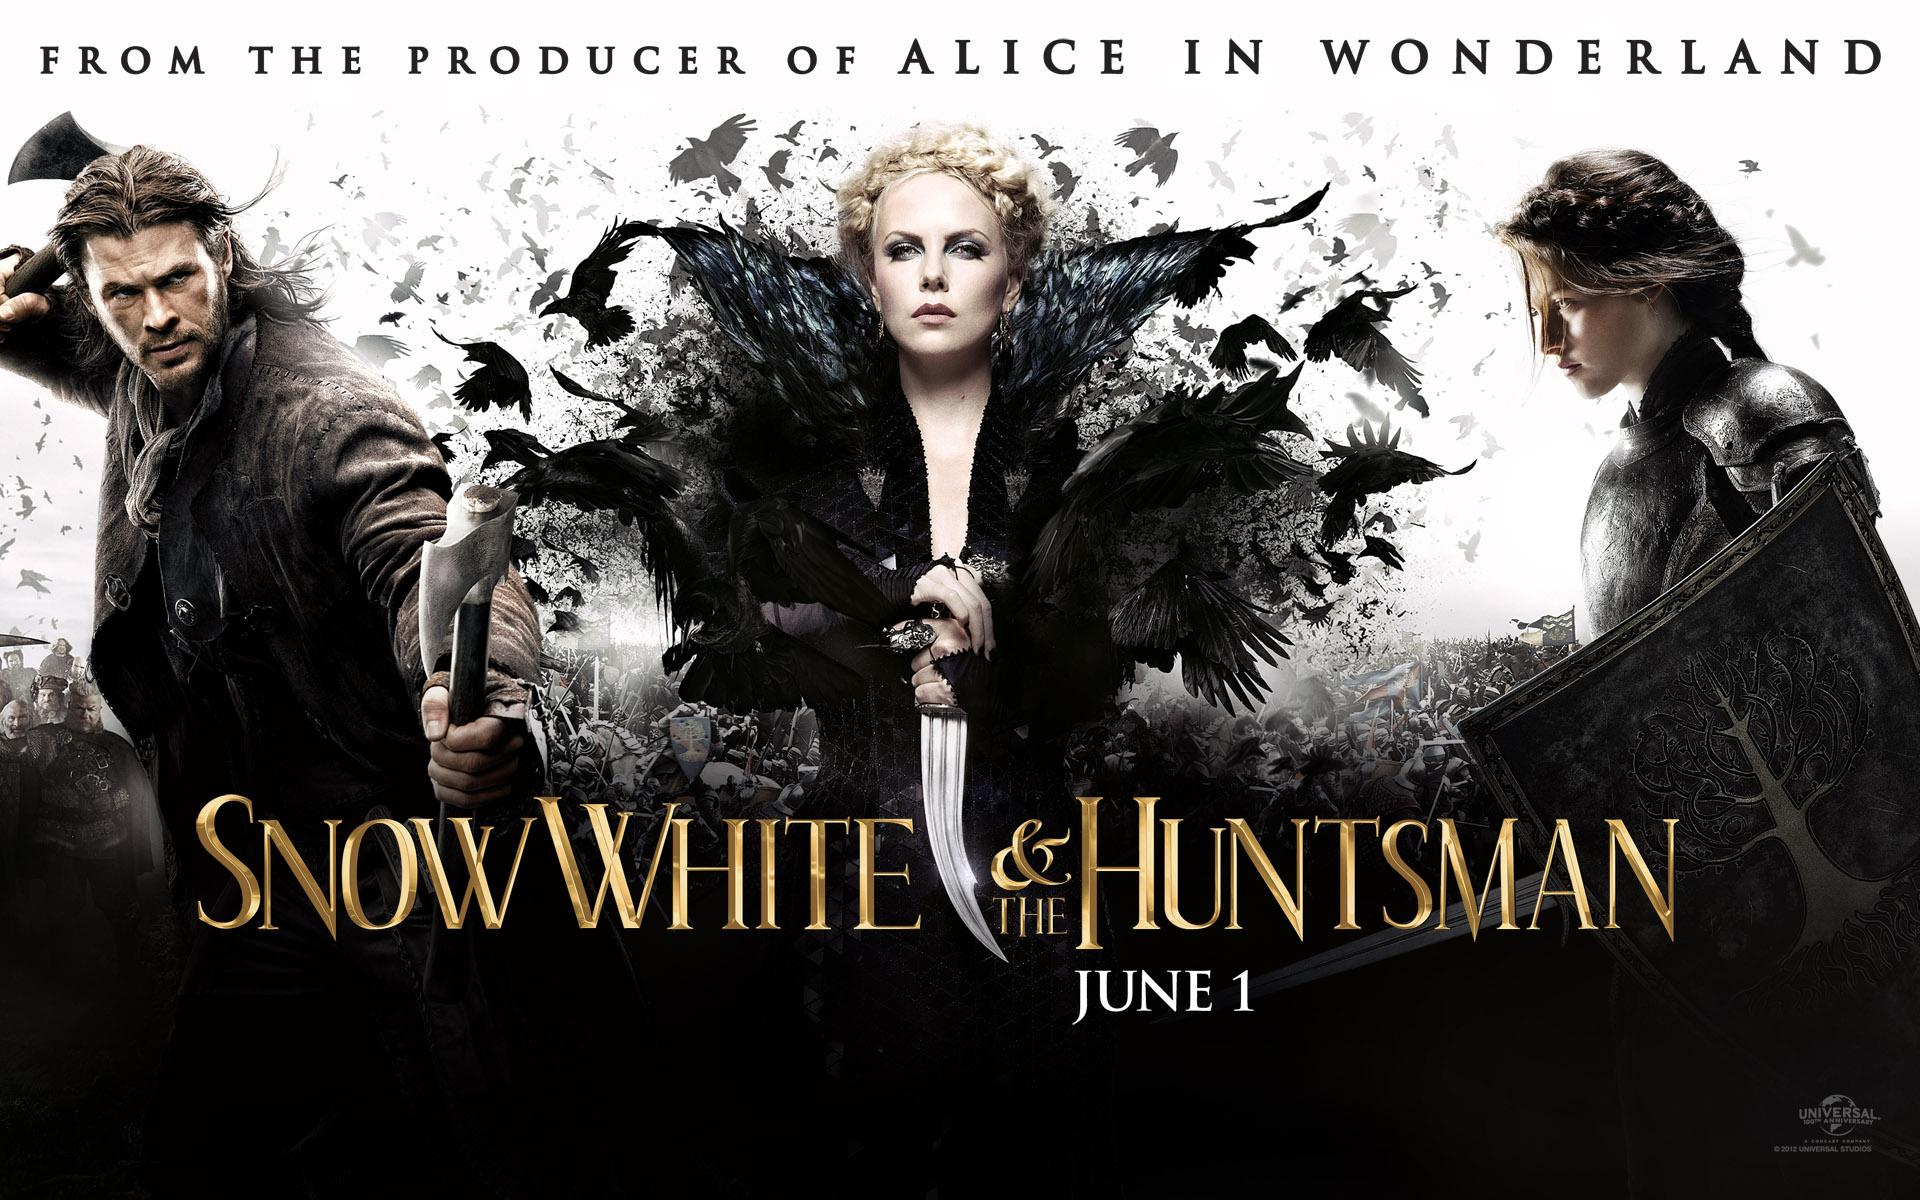 Snow White and the Huntsman Movie | Official Downloads for the Snow White and the Huntsman Film | In Theaters June 1, 2012